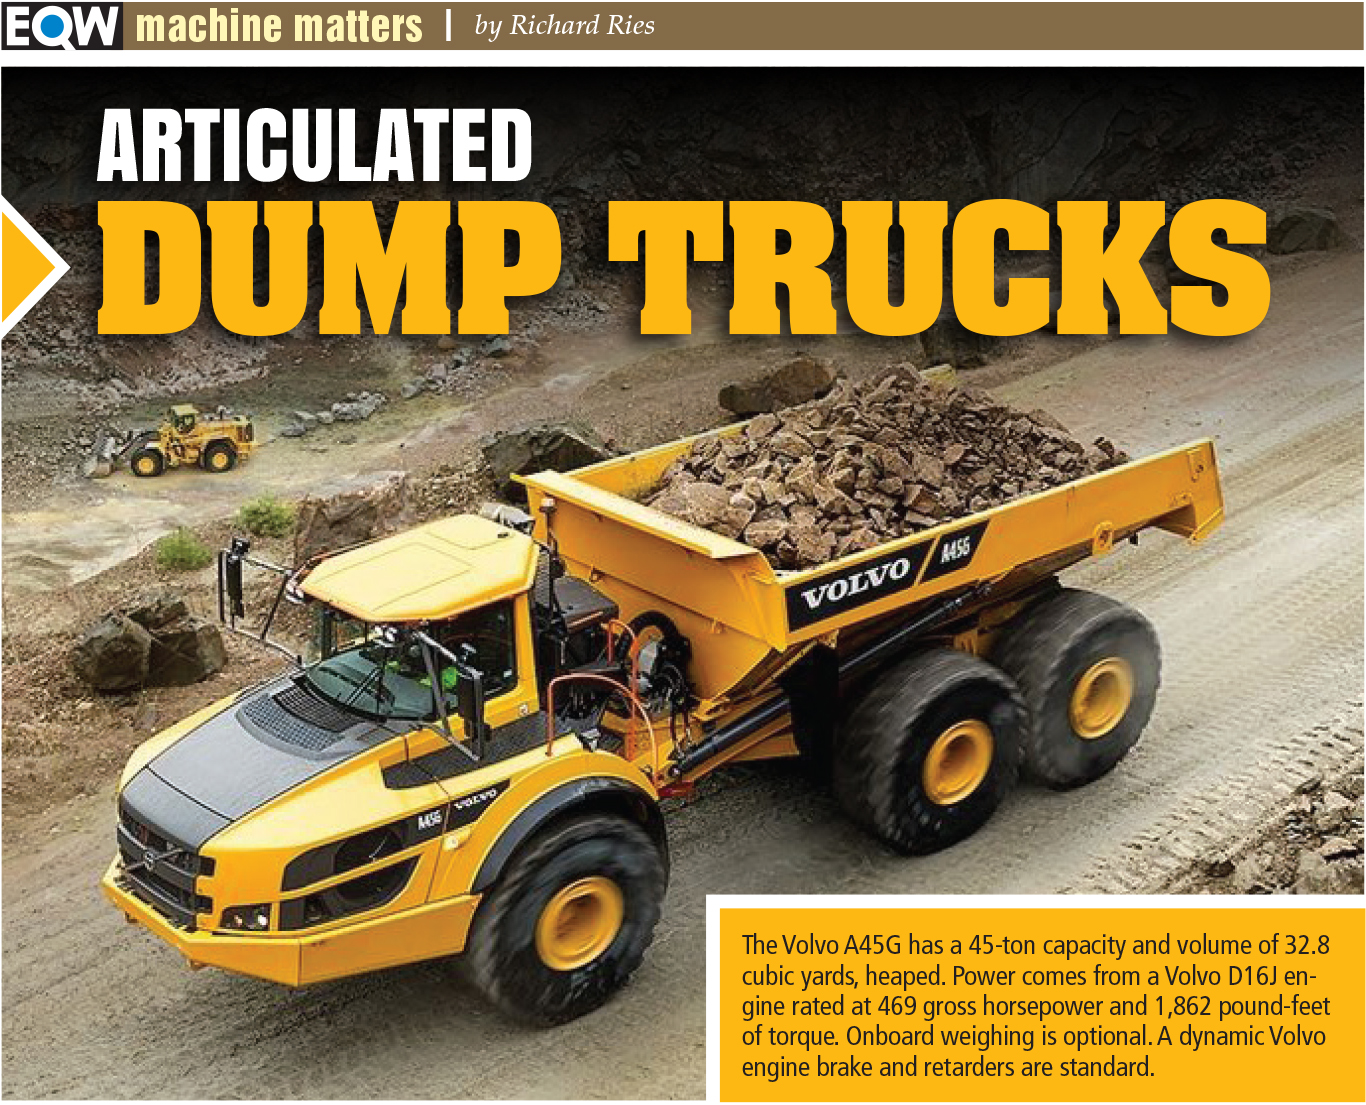 In high demand popular articulated dump truck models seeing steady